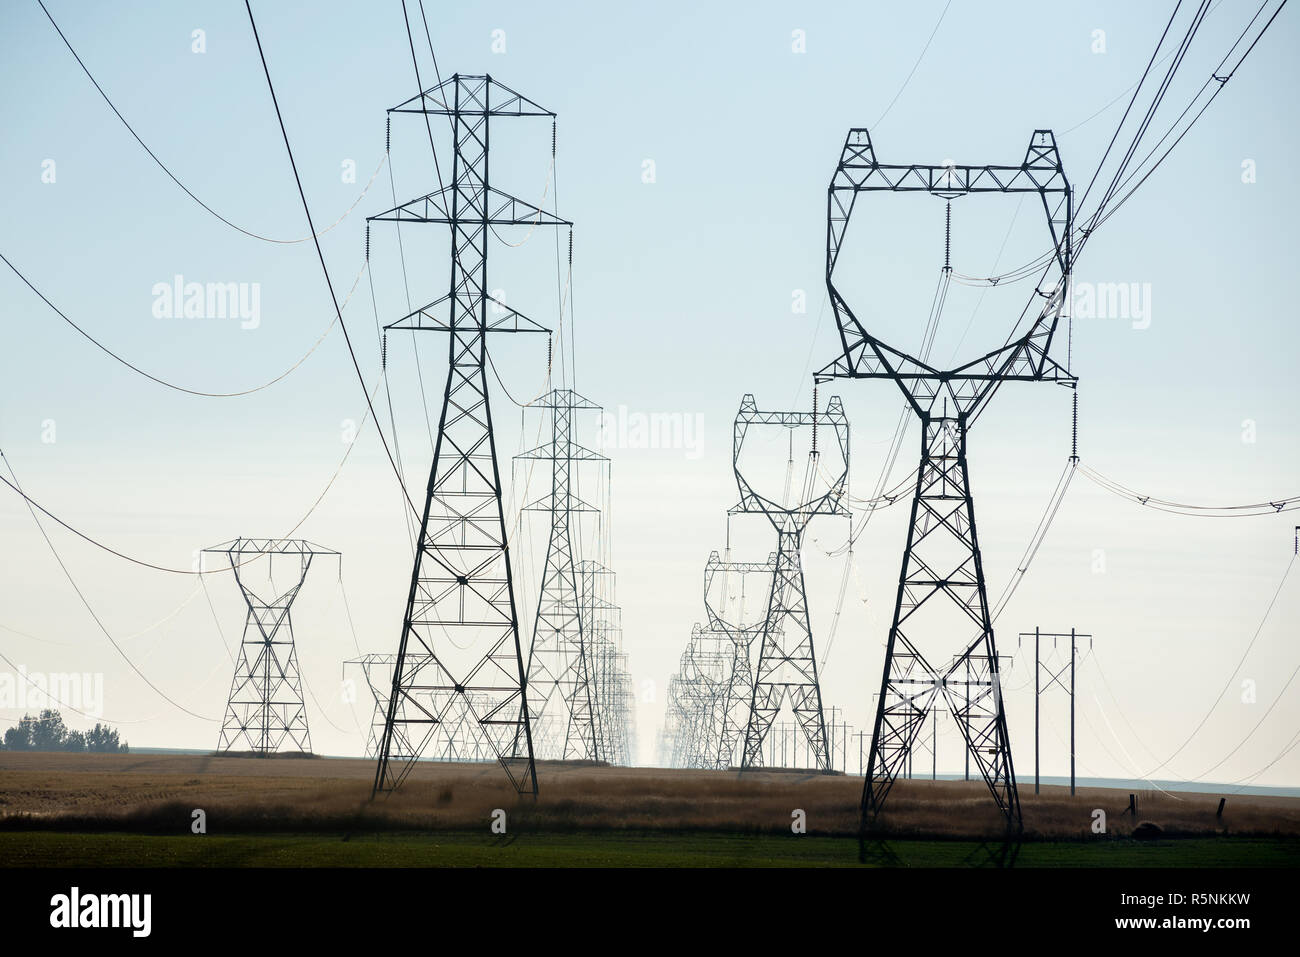 High tension power lines in Eastern Washington. - Stock Image